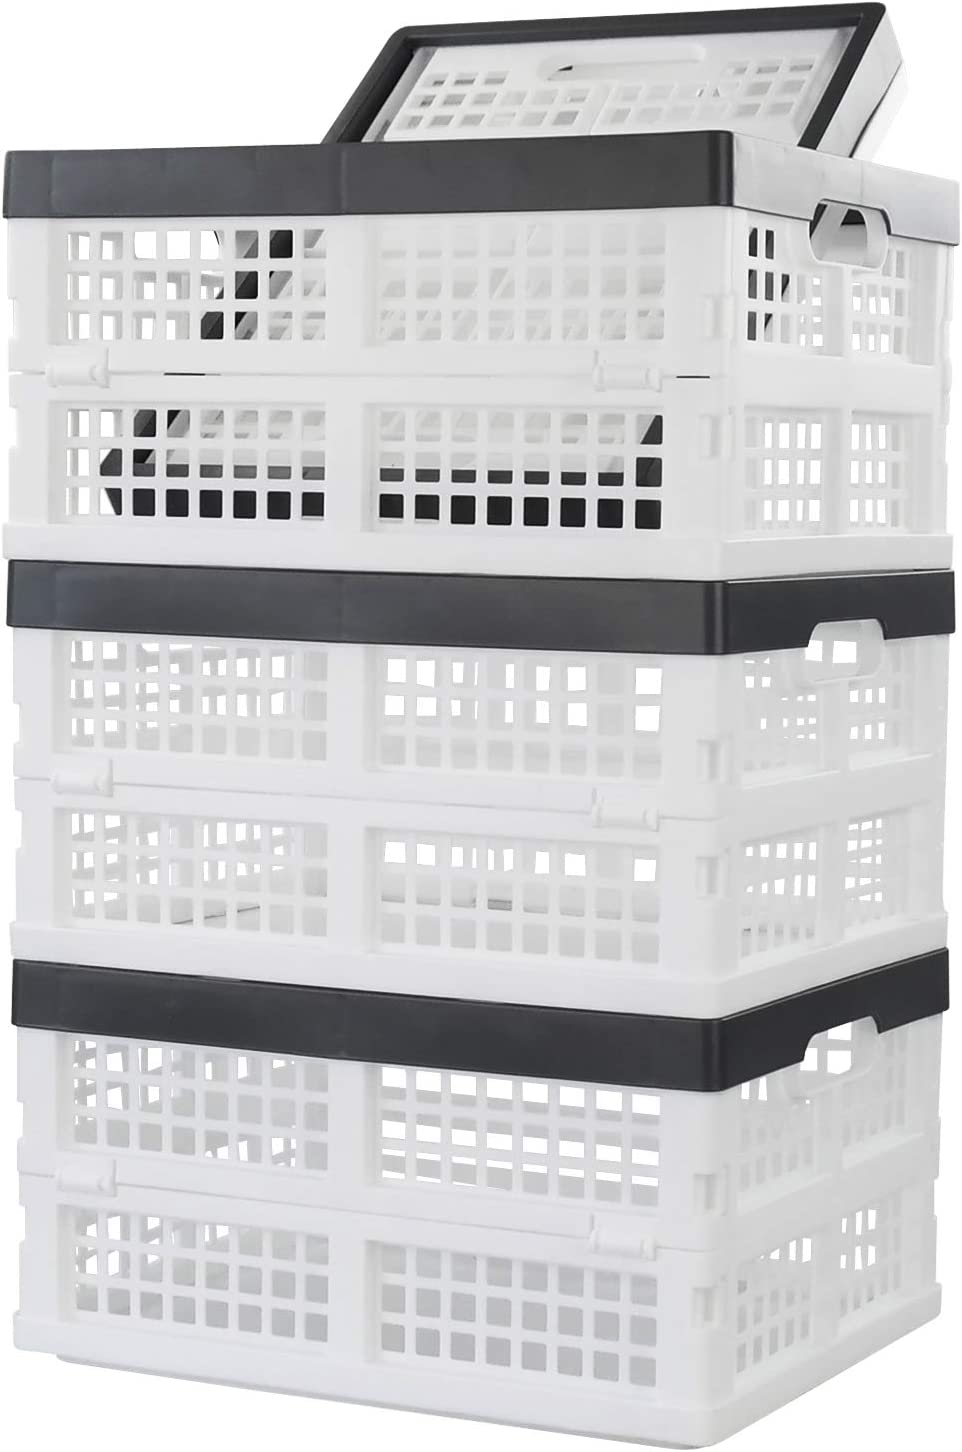 Ponpong Plastic Flat Crate Storage Collapsible Crate, White Deep Grey, 4 Packs